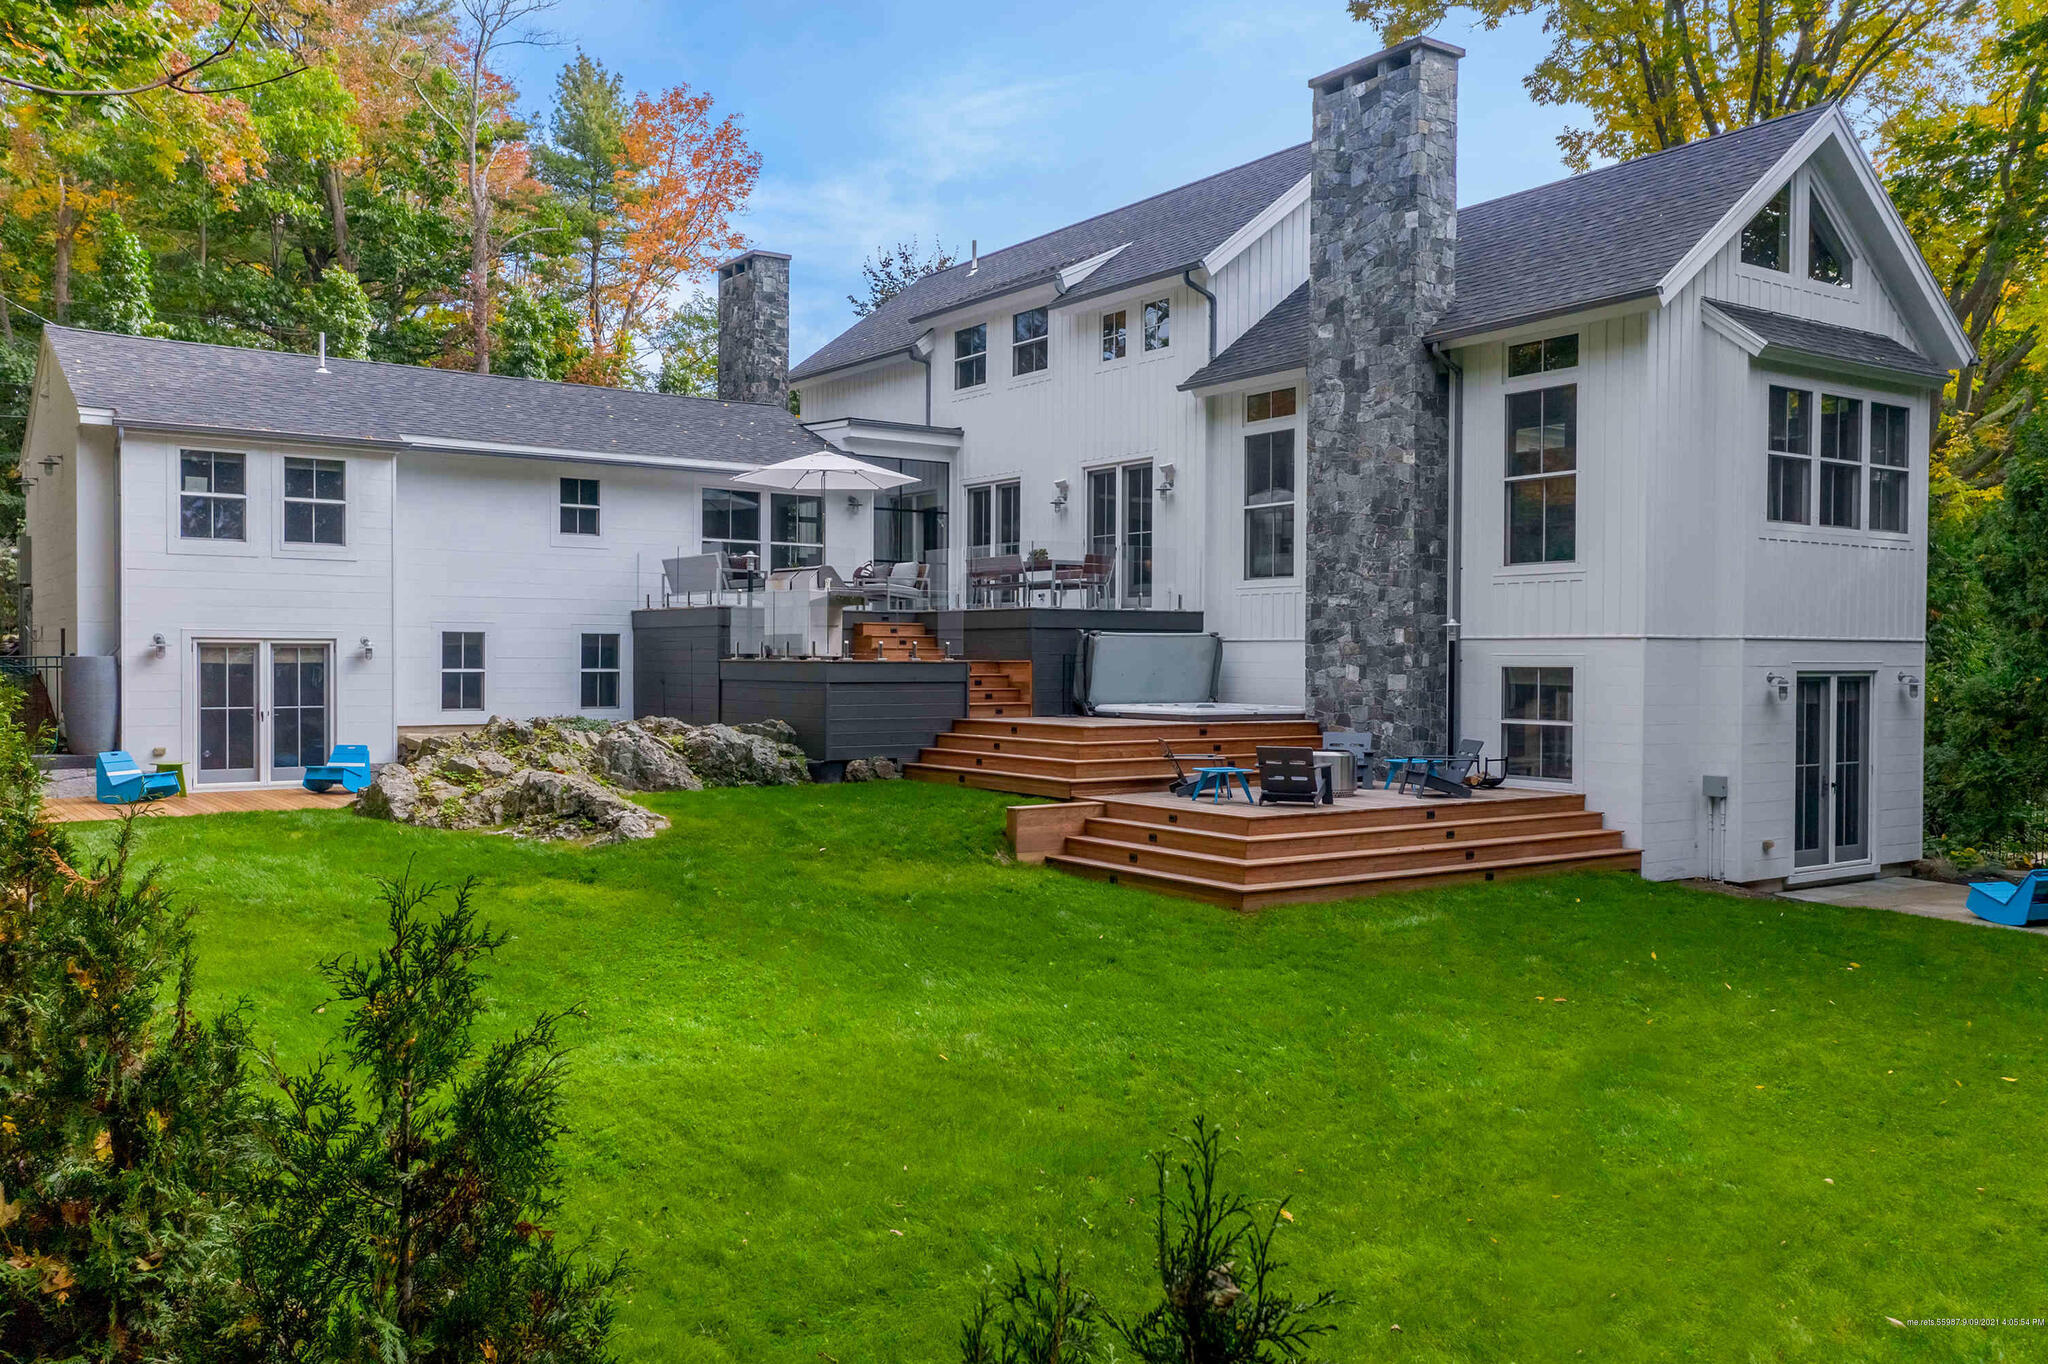 Photo of 12 Sentry Hill Road York ME 03909